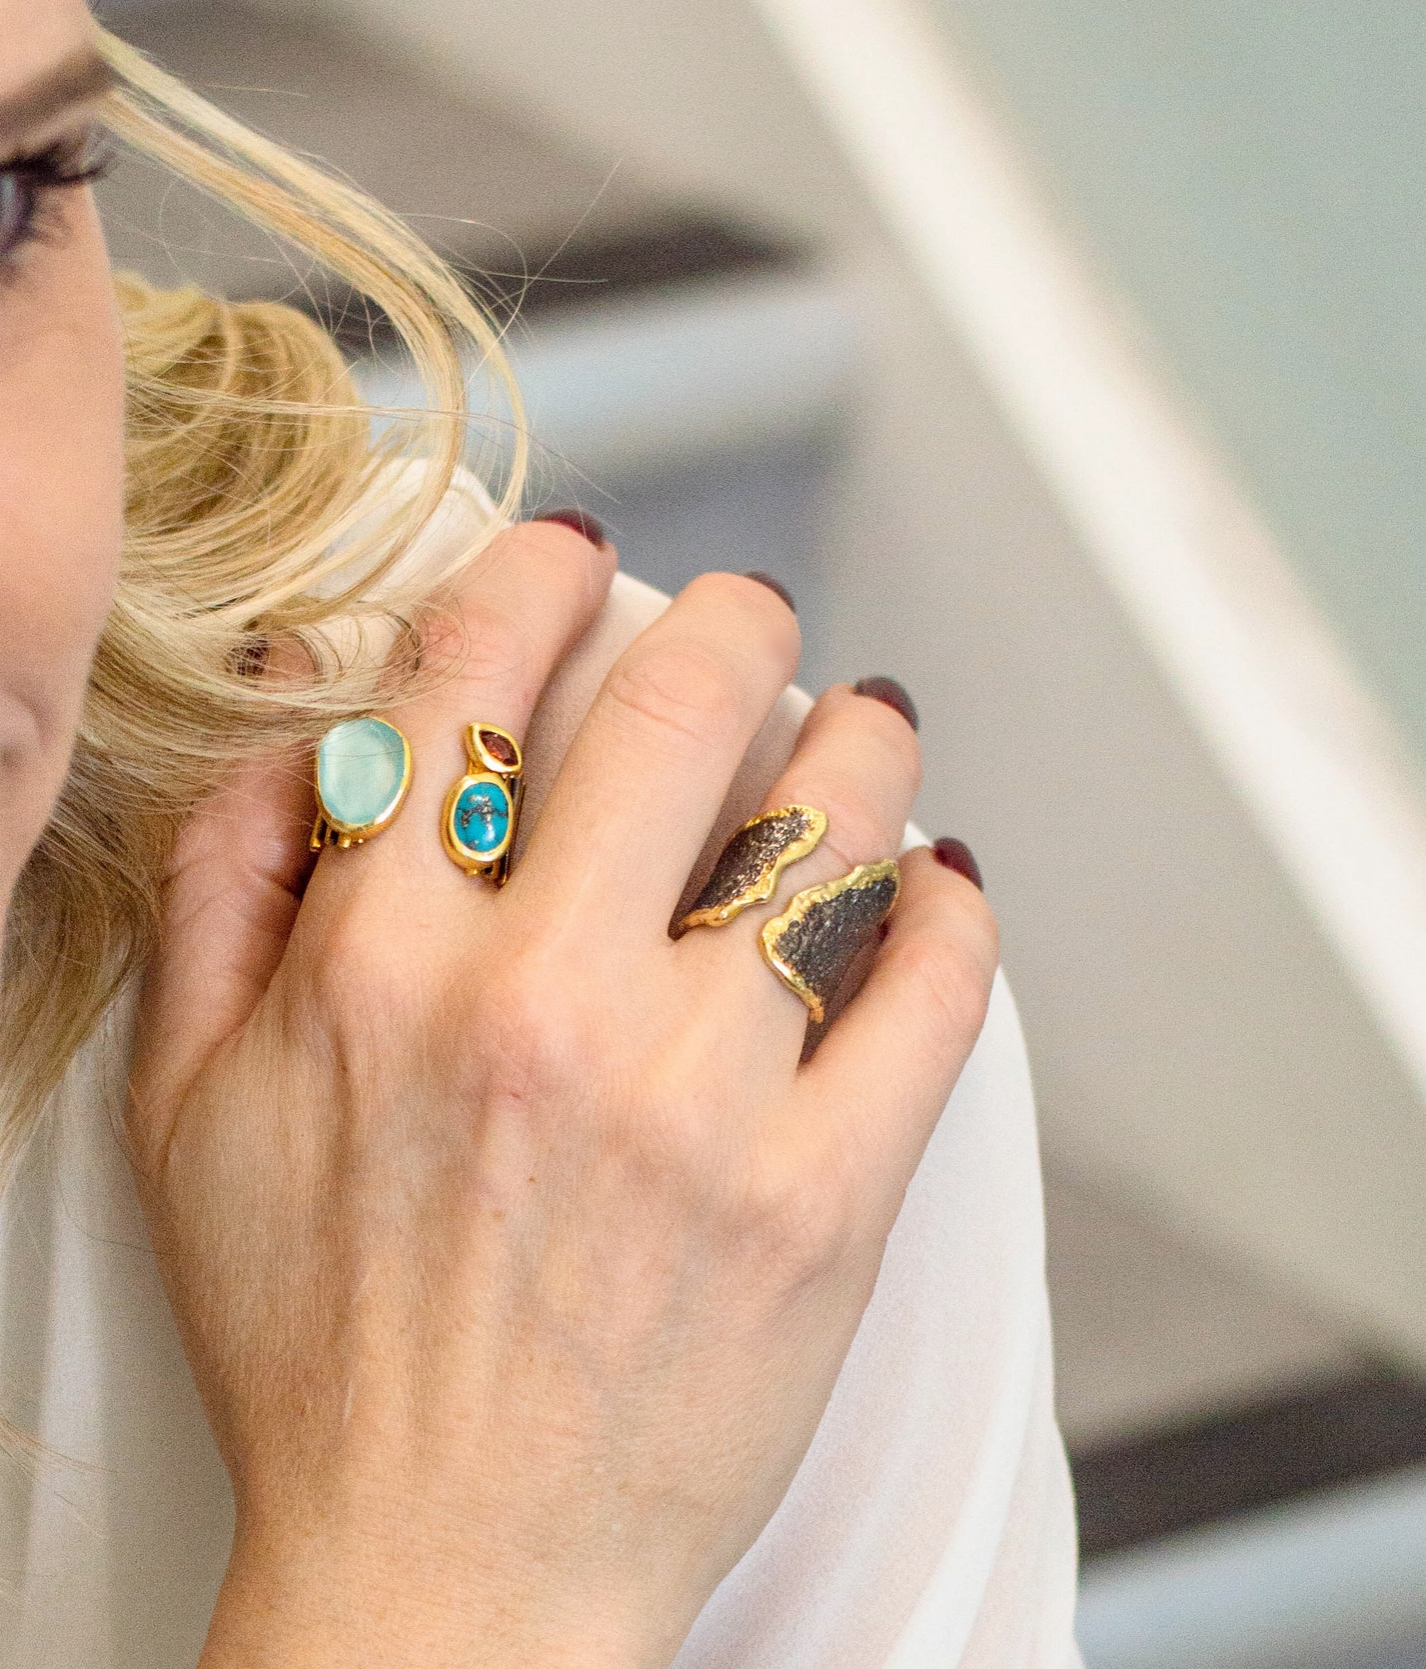 COCKTAIL - Give your style party glam, flirt with your hands or complement your chandelier earrings with a classic cocktail ring. You can easily fake the look by stacking smaller rings.SHOP